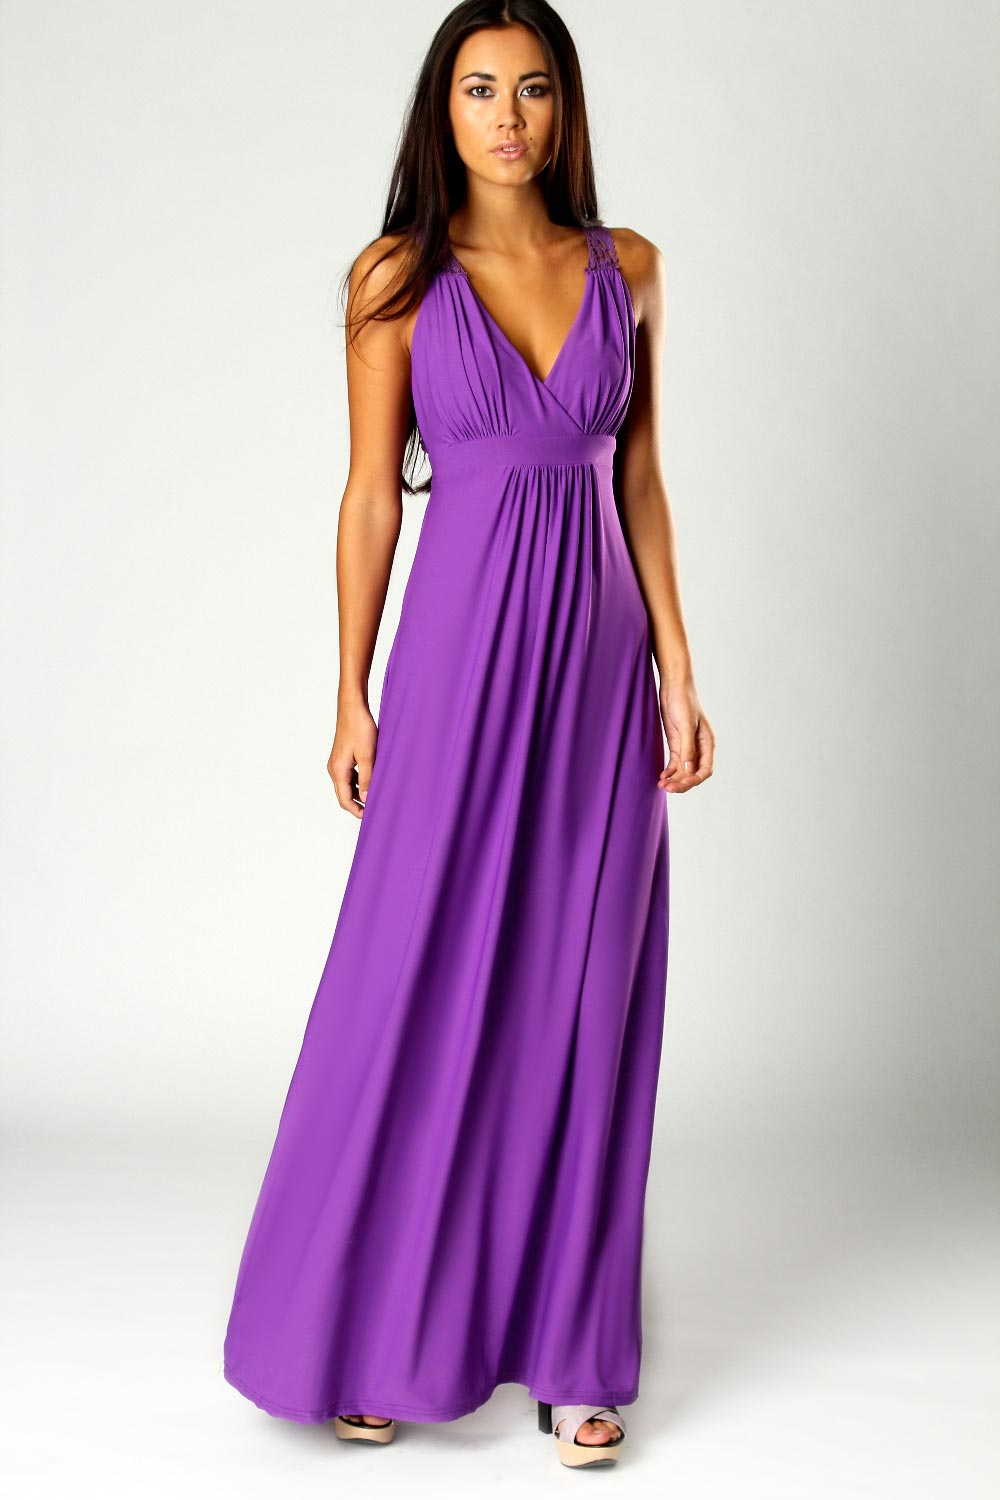 Purple prom dresses and purple formal dresses from exeezipcoolgetsiu9tq.cf are really in trendy design and with magnificent details such as sparkling jewels. All these .